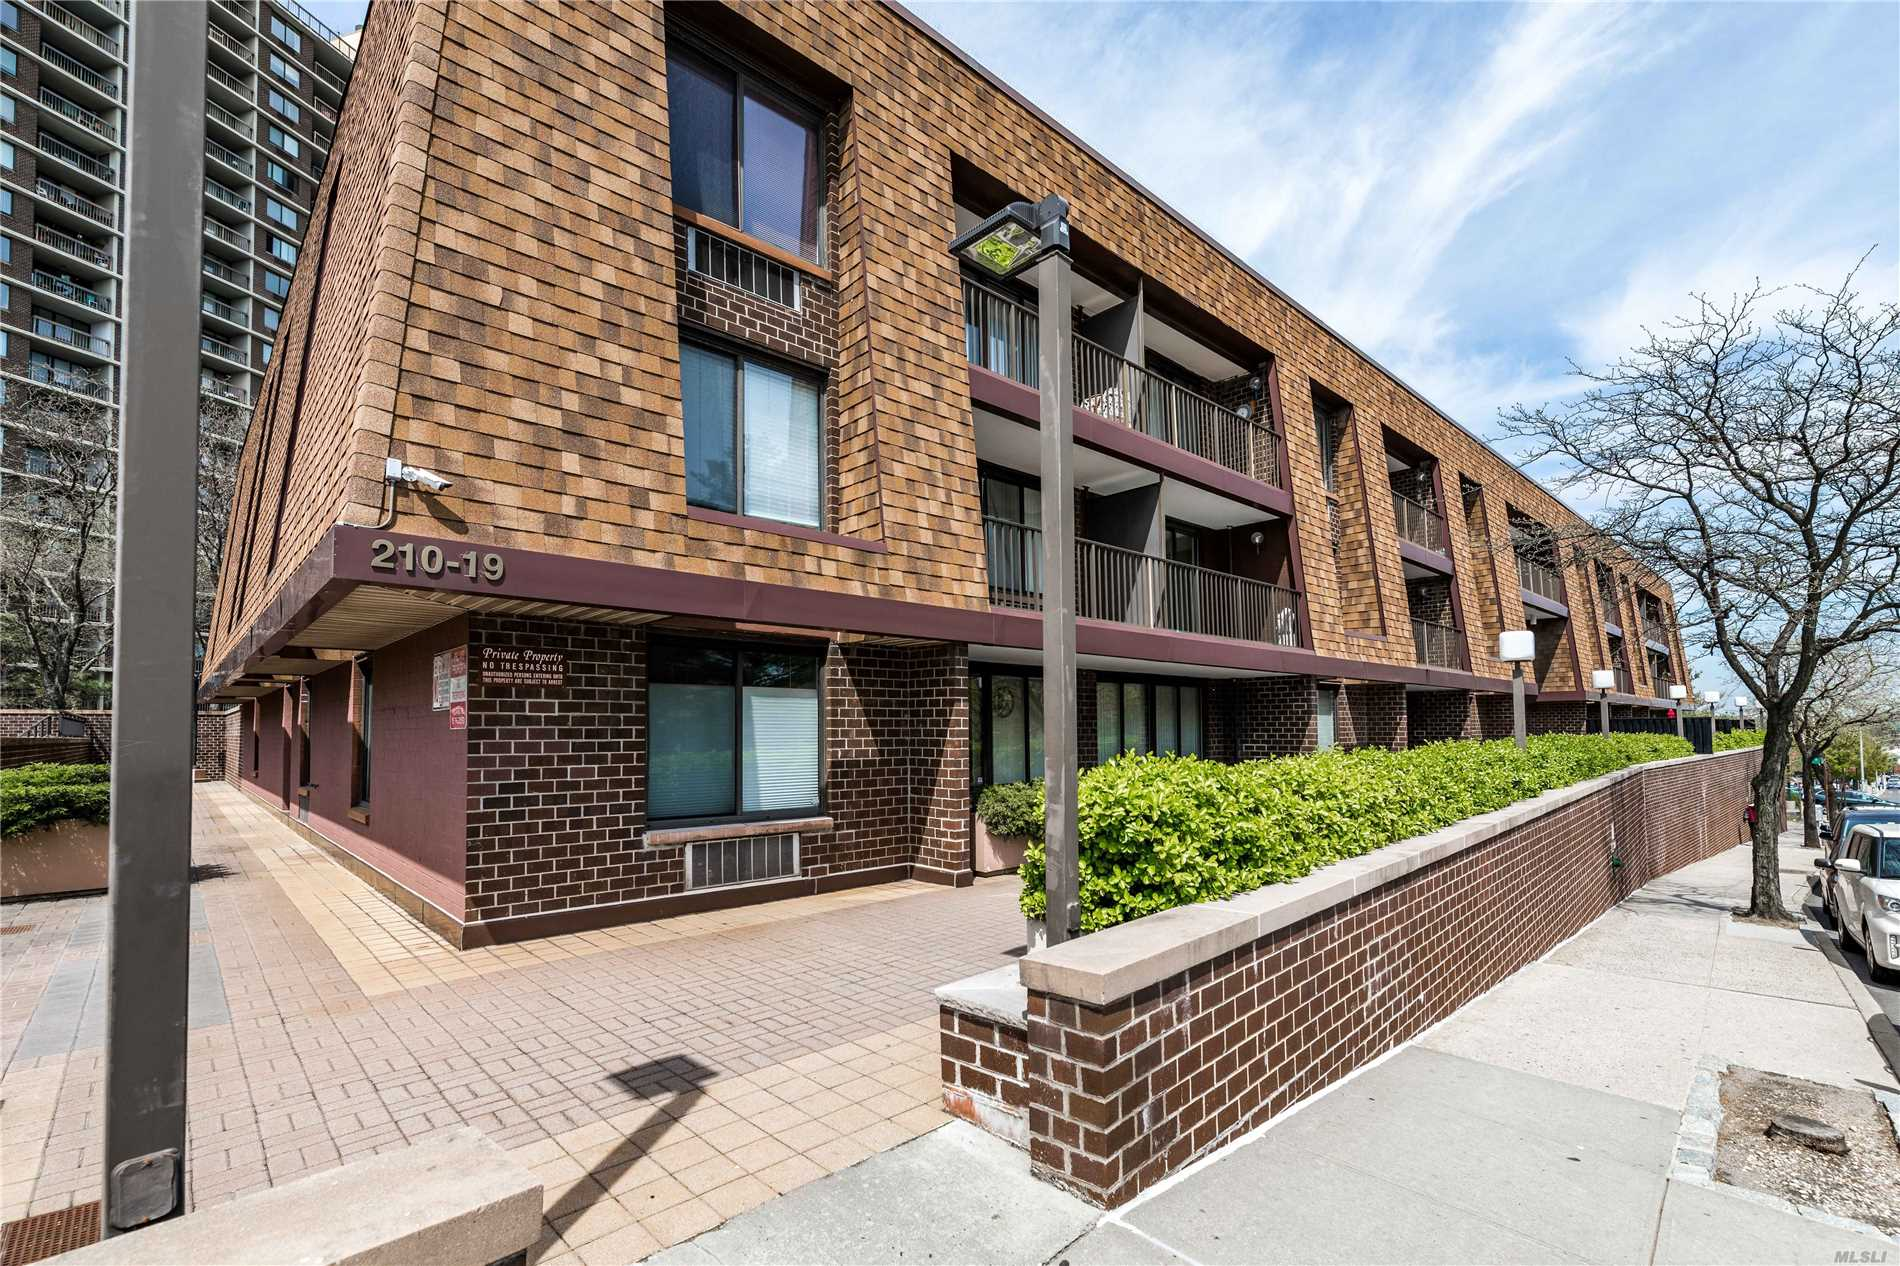 Fantastic 1 Bedroom / 1 Bath with Washer and Dryer in the unit. The condo also comes with parking. 1 Block away from the Bay Terrace shopping center and the QM2 express bus to Manhattan